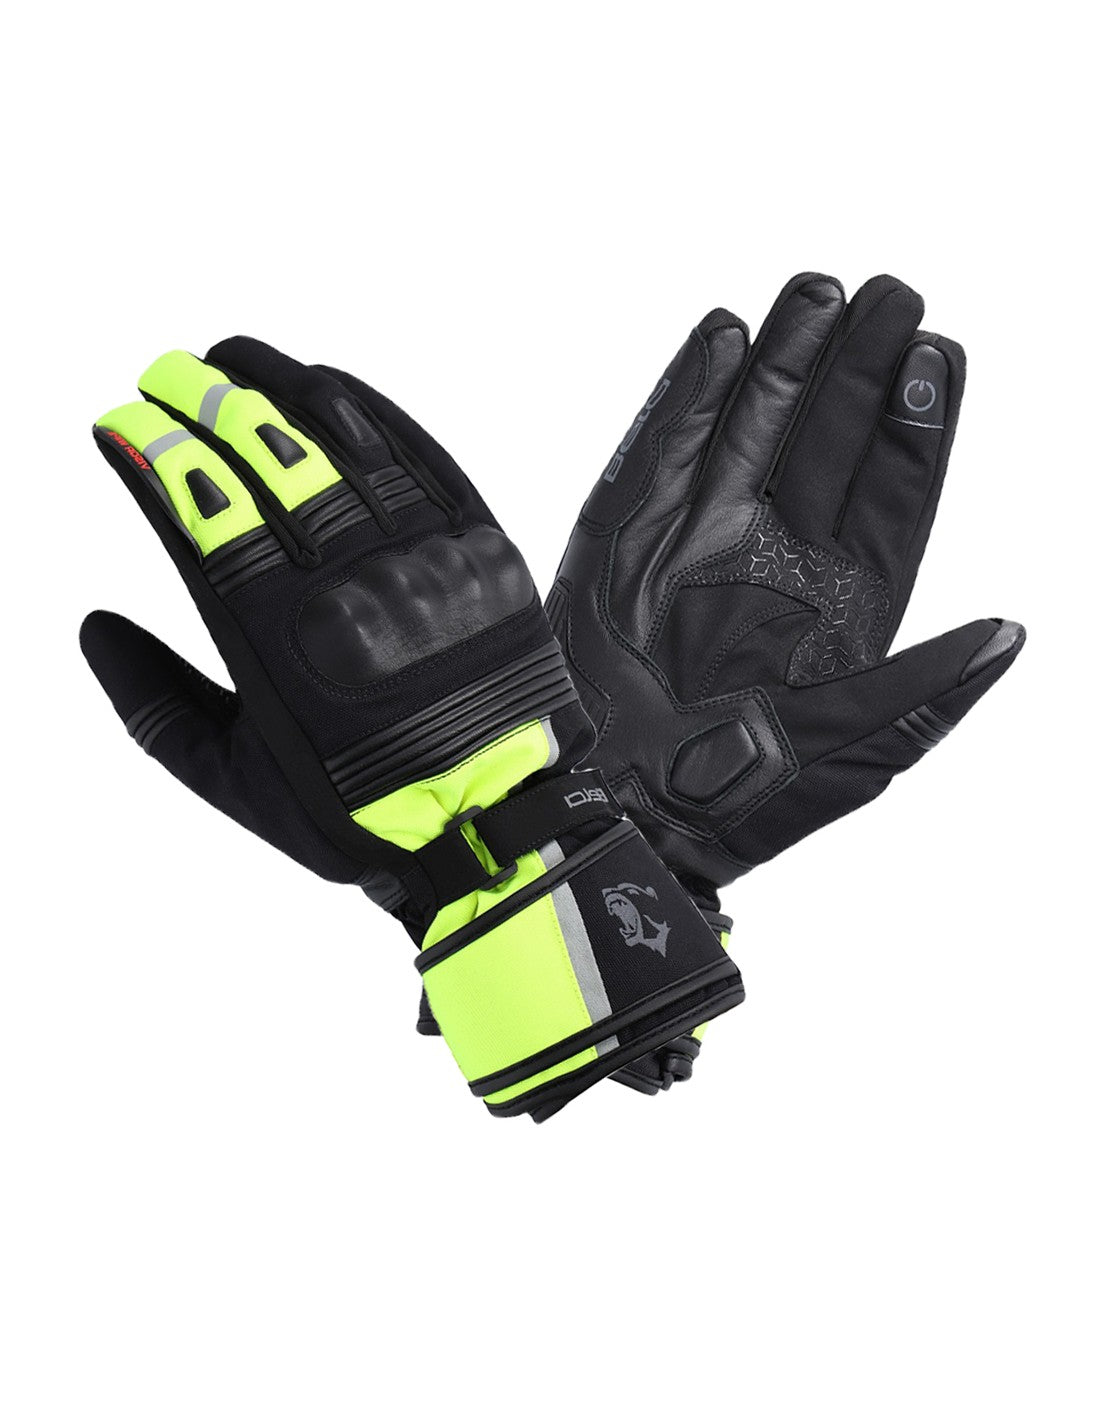 Bela Ice Winter WP Guanti Moto Donna Nero/Giallo Fluor